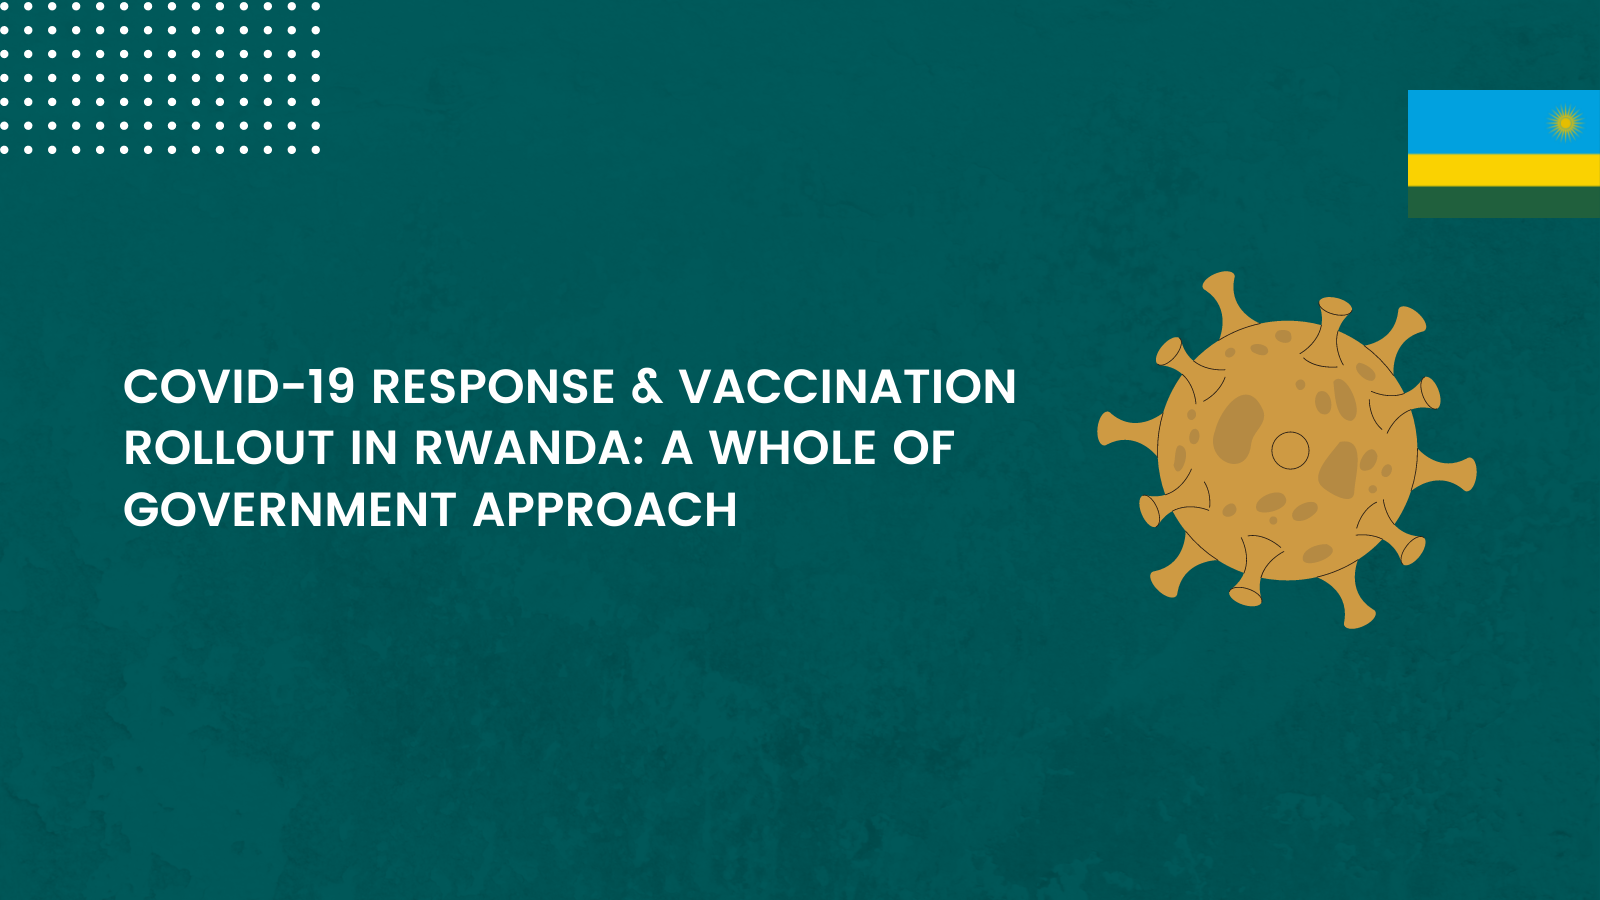 COVID-19 Response And Vaccination Rollout In Rwanda: A Whole Of Government Approach